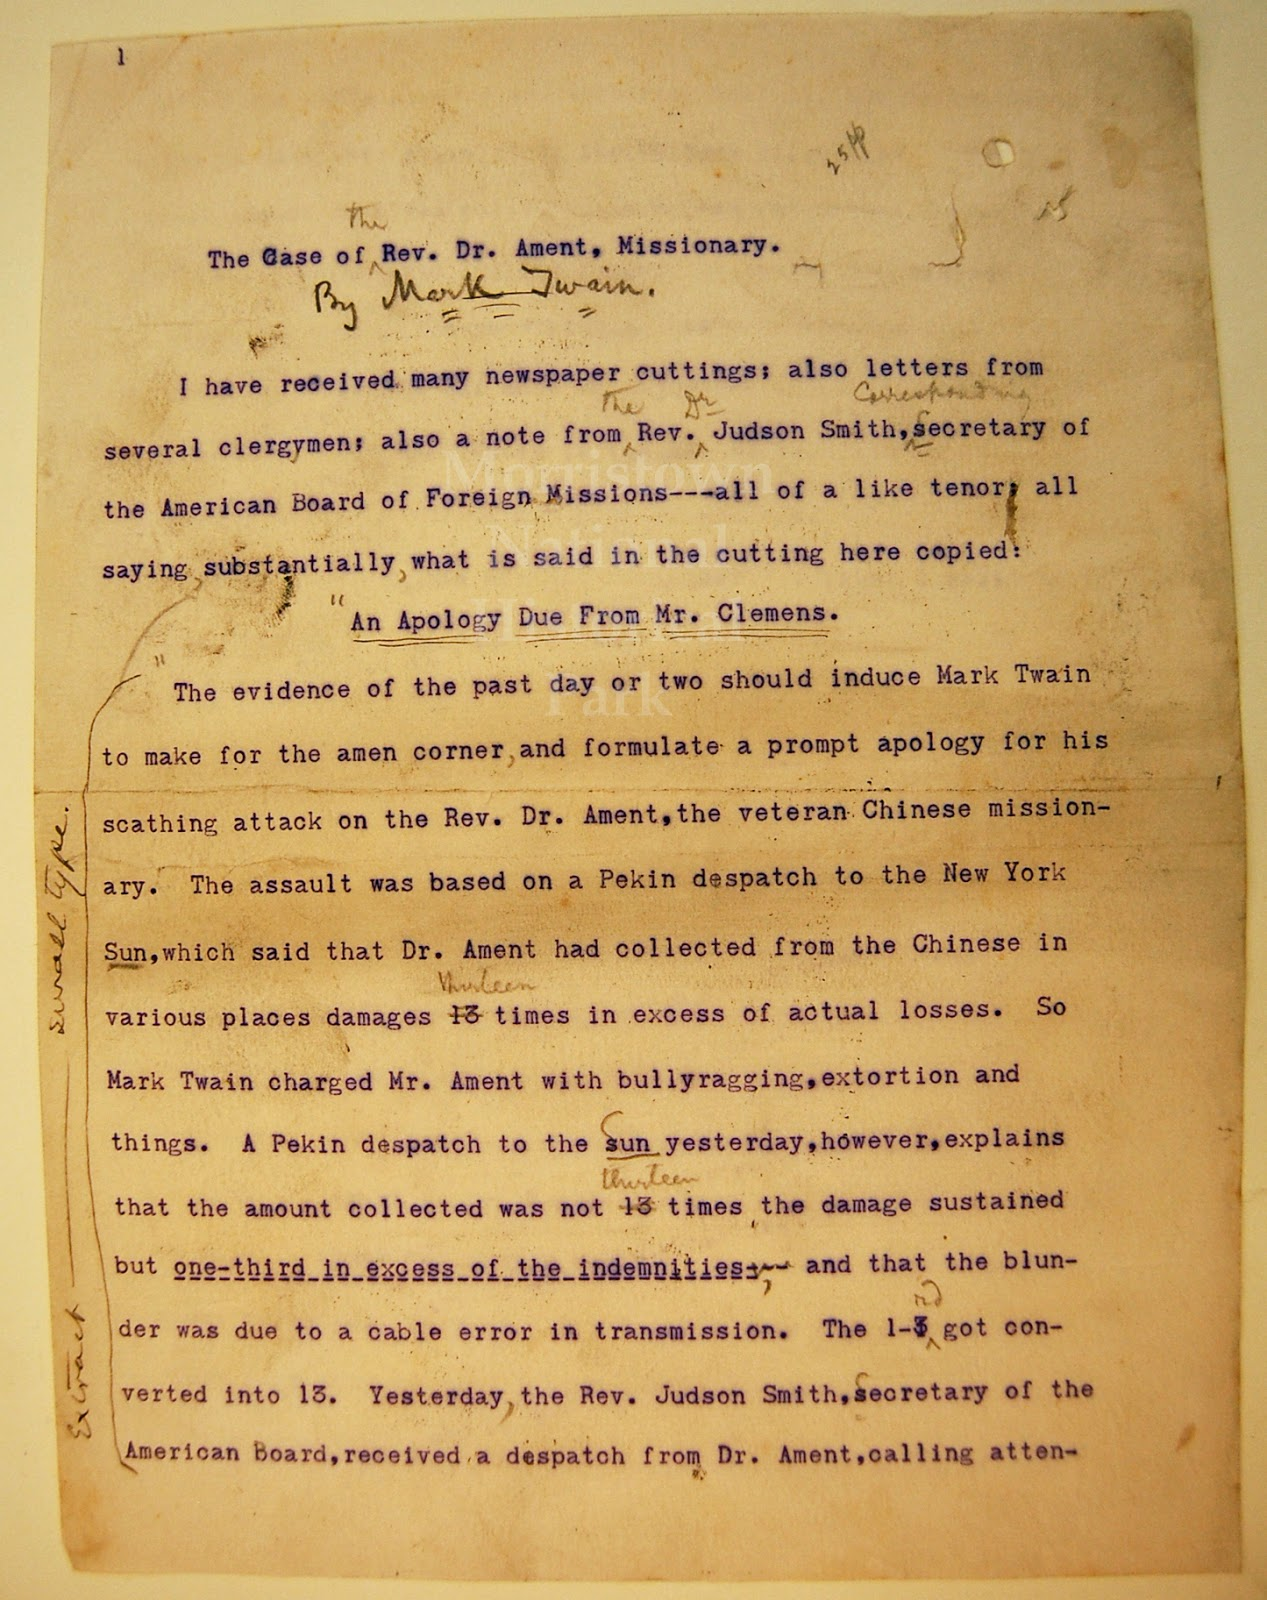 twain essay writing quotes mark twain com student s funny test and  morristown national historical park museum and library featured featured manuscript edited mark twain article